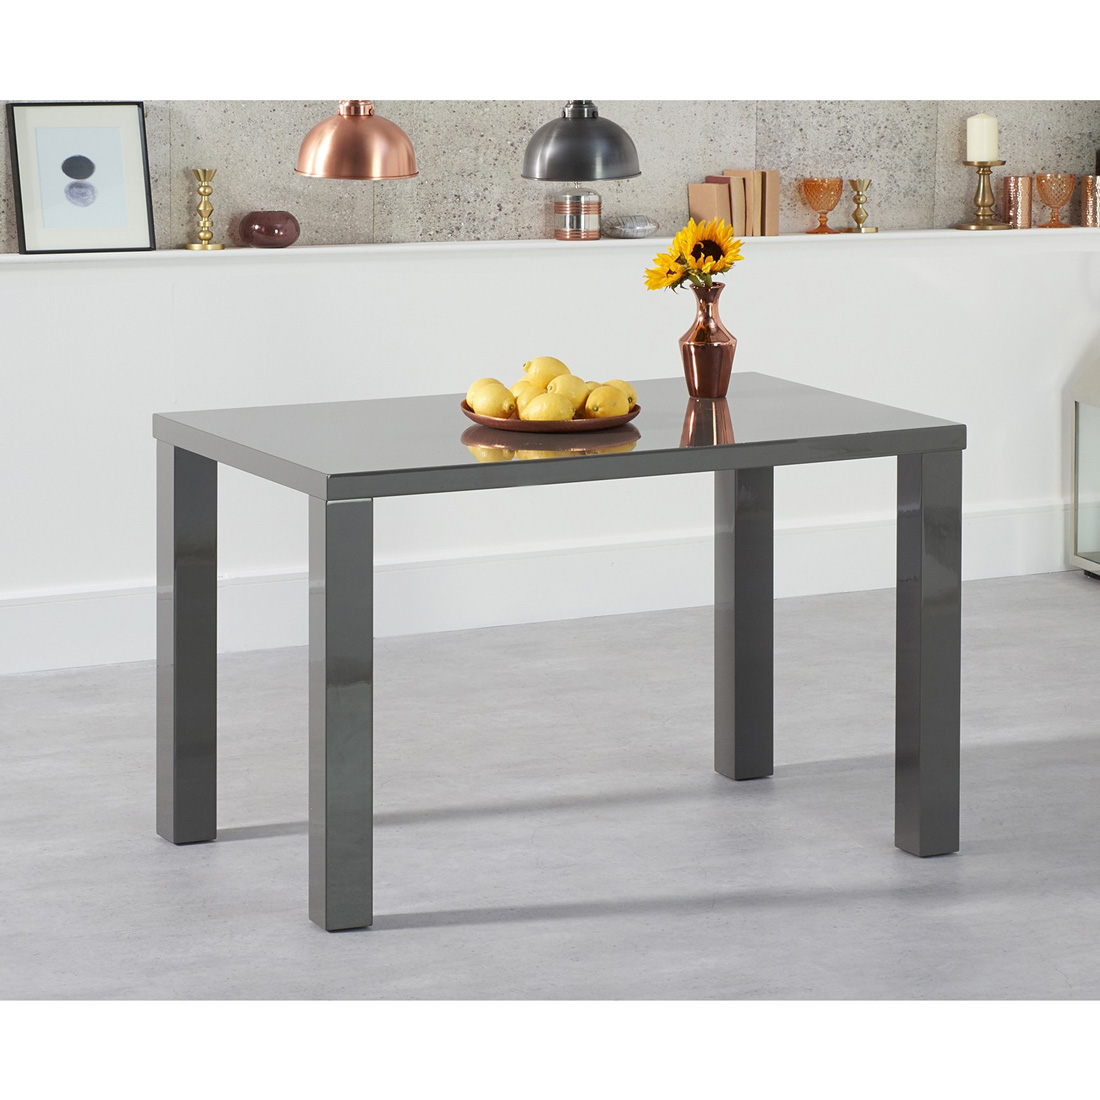 Luna Dark Grey Gloss Dining Table – Rectangular 120 – 200 cm Solid